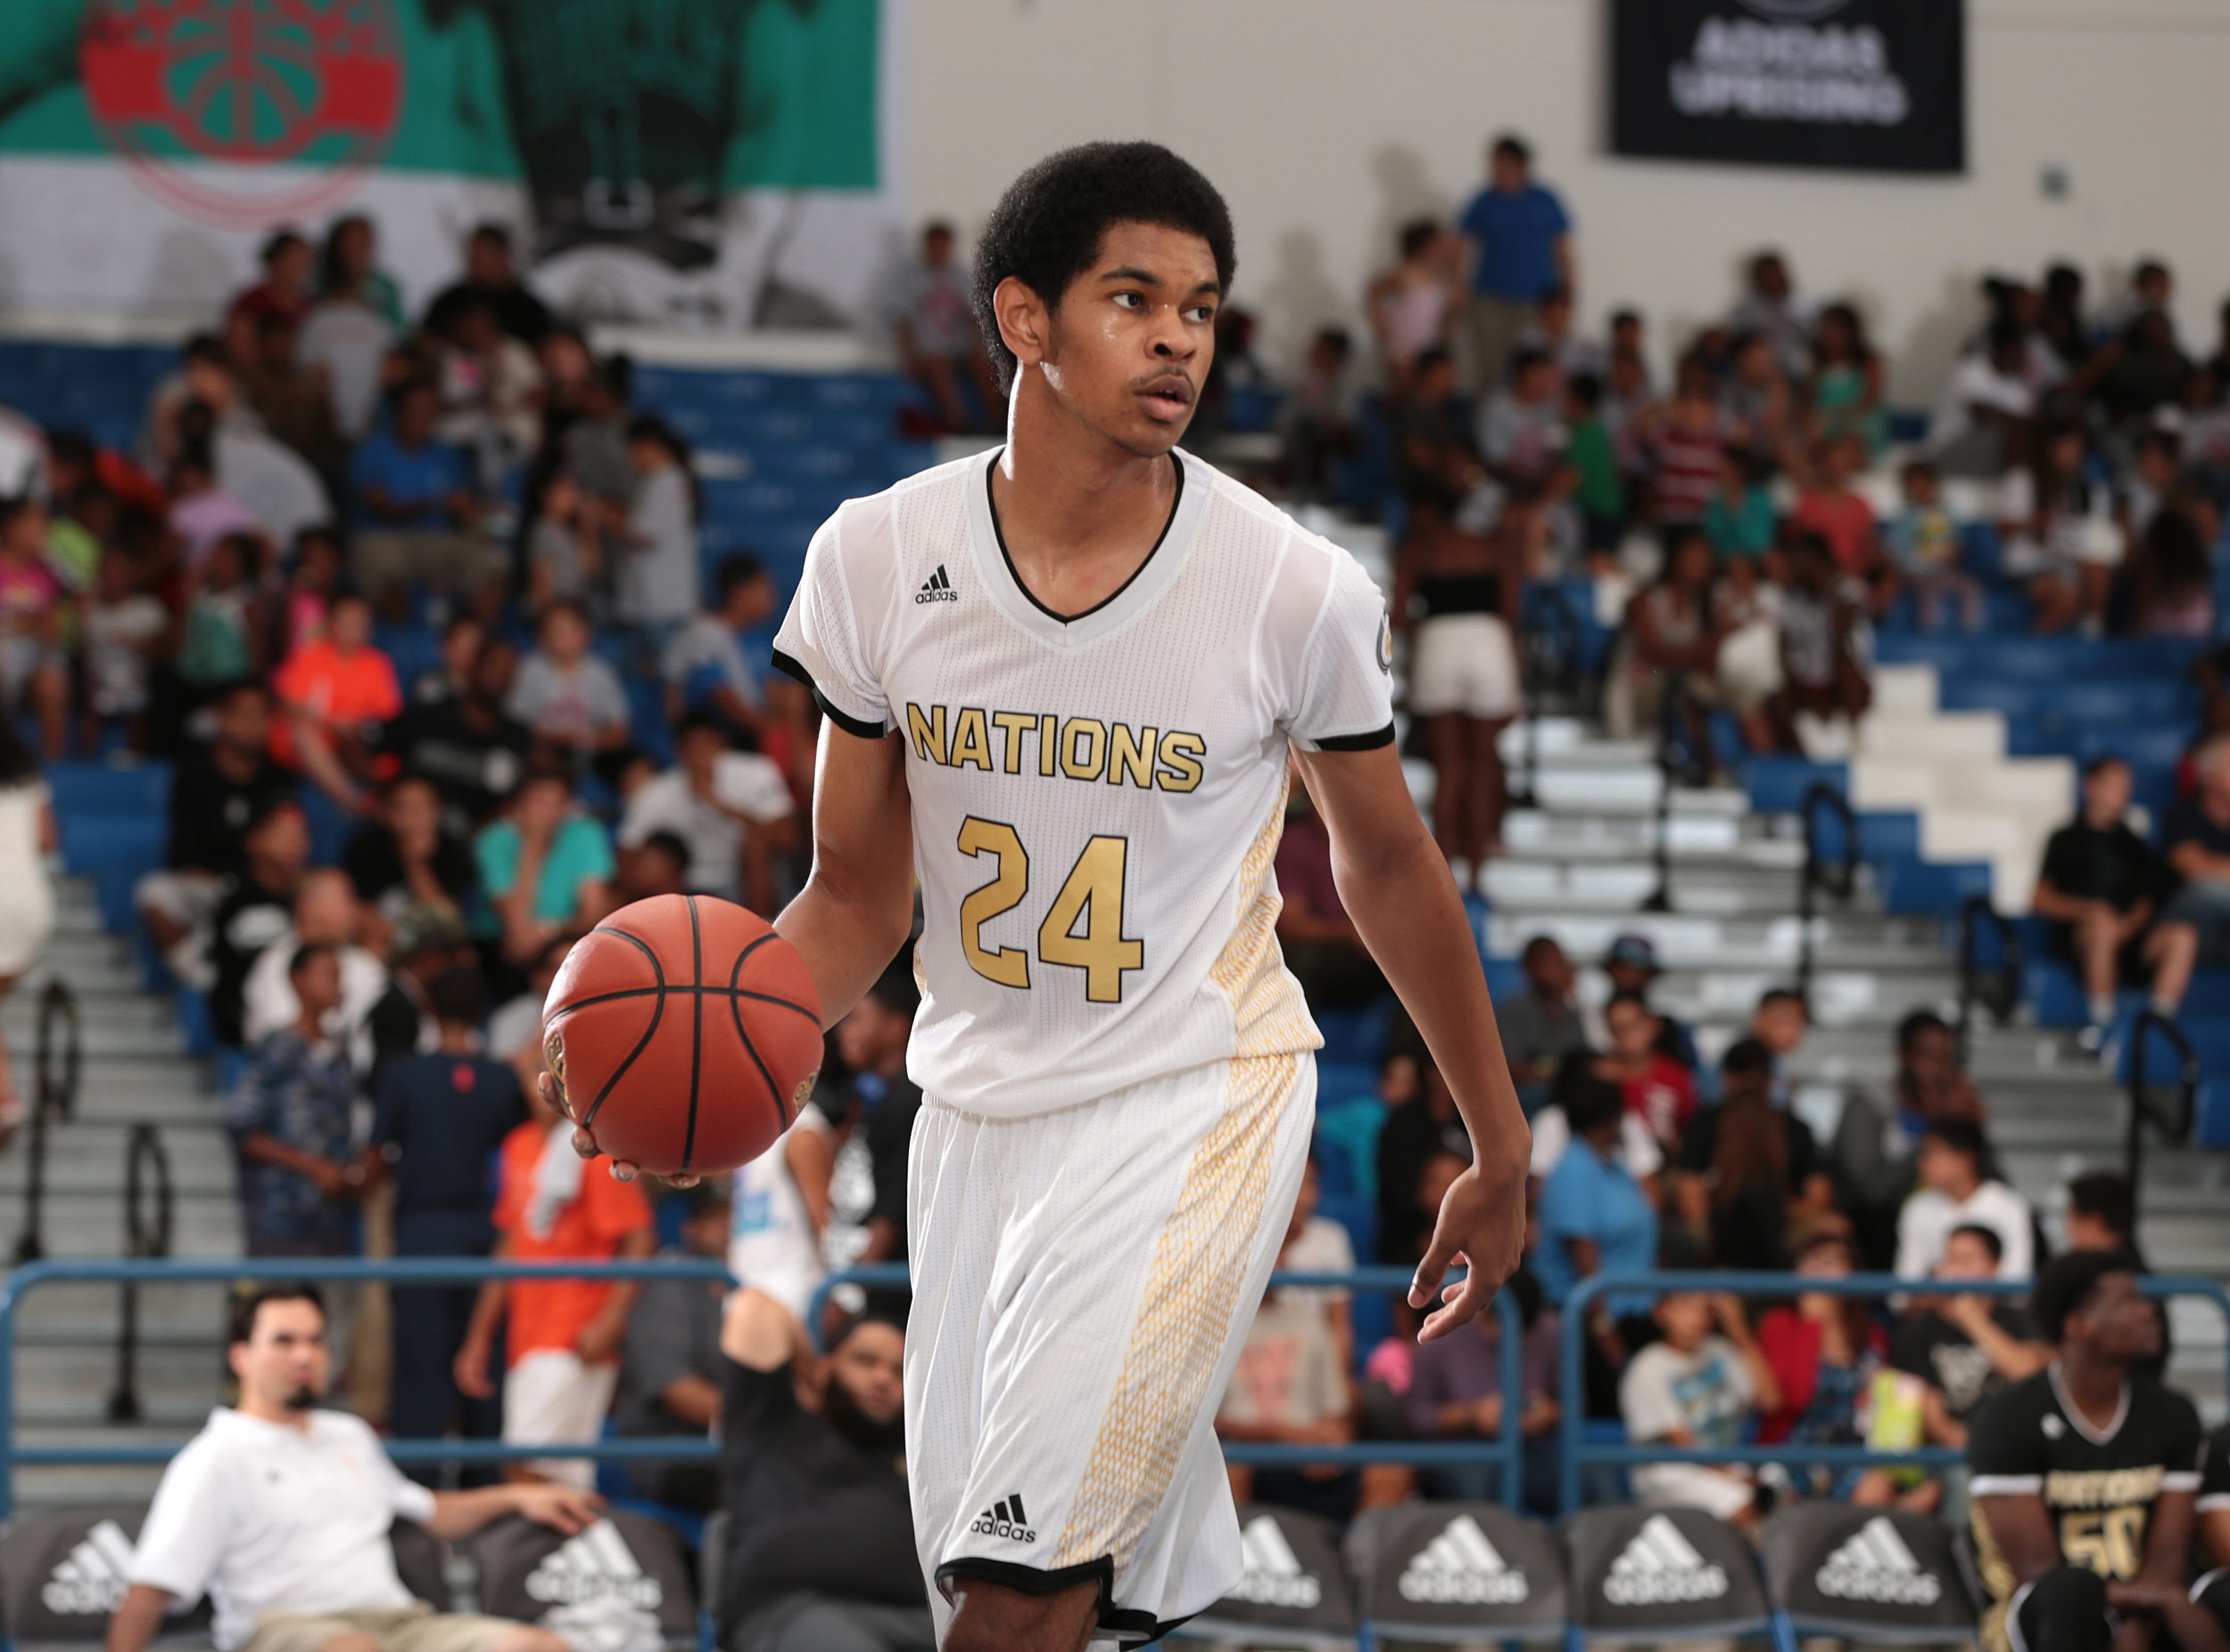 6 college basketball recruits who blew up this summer